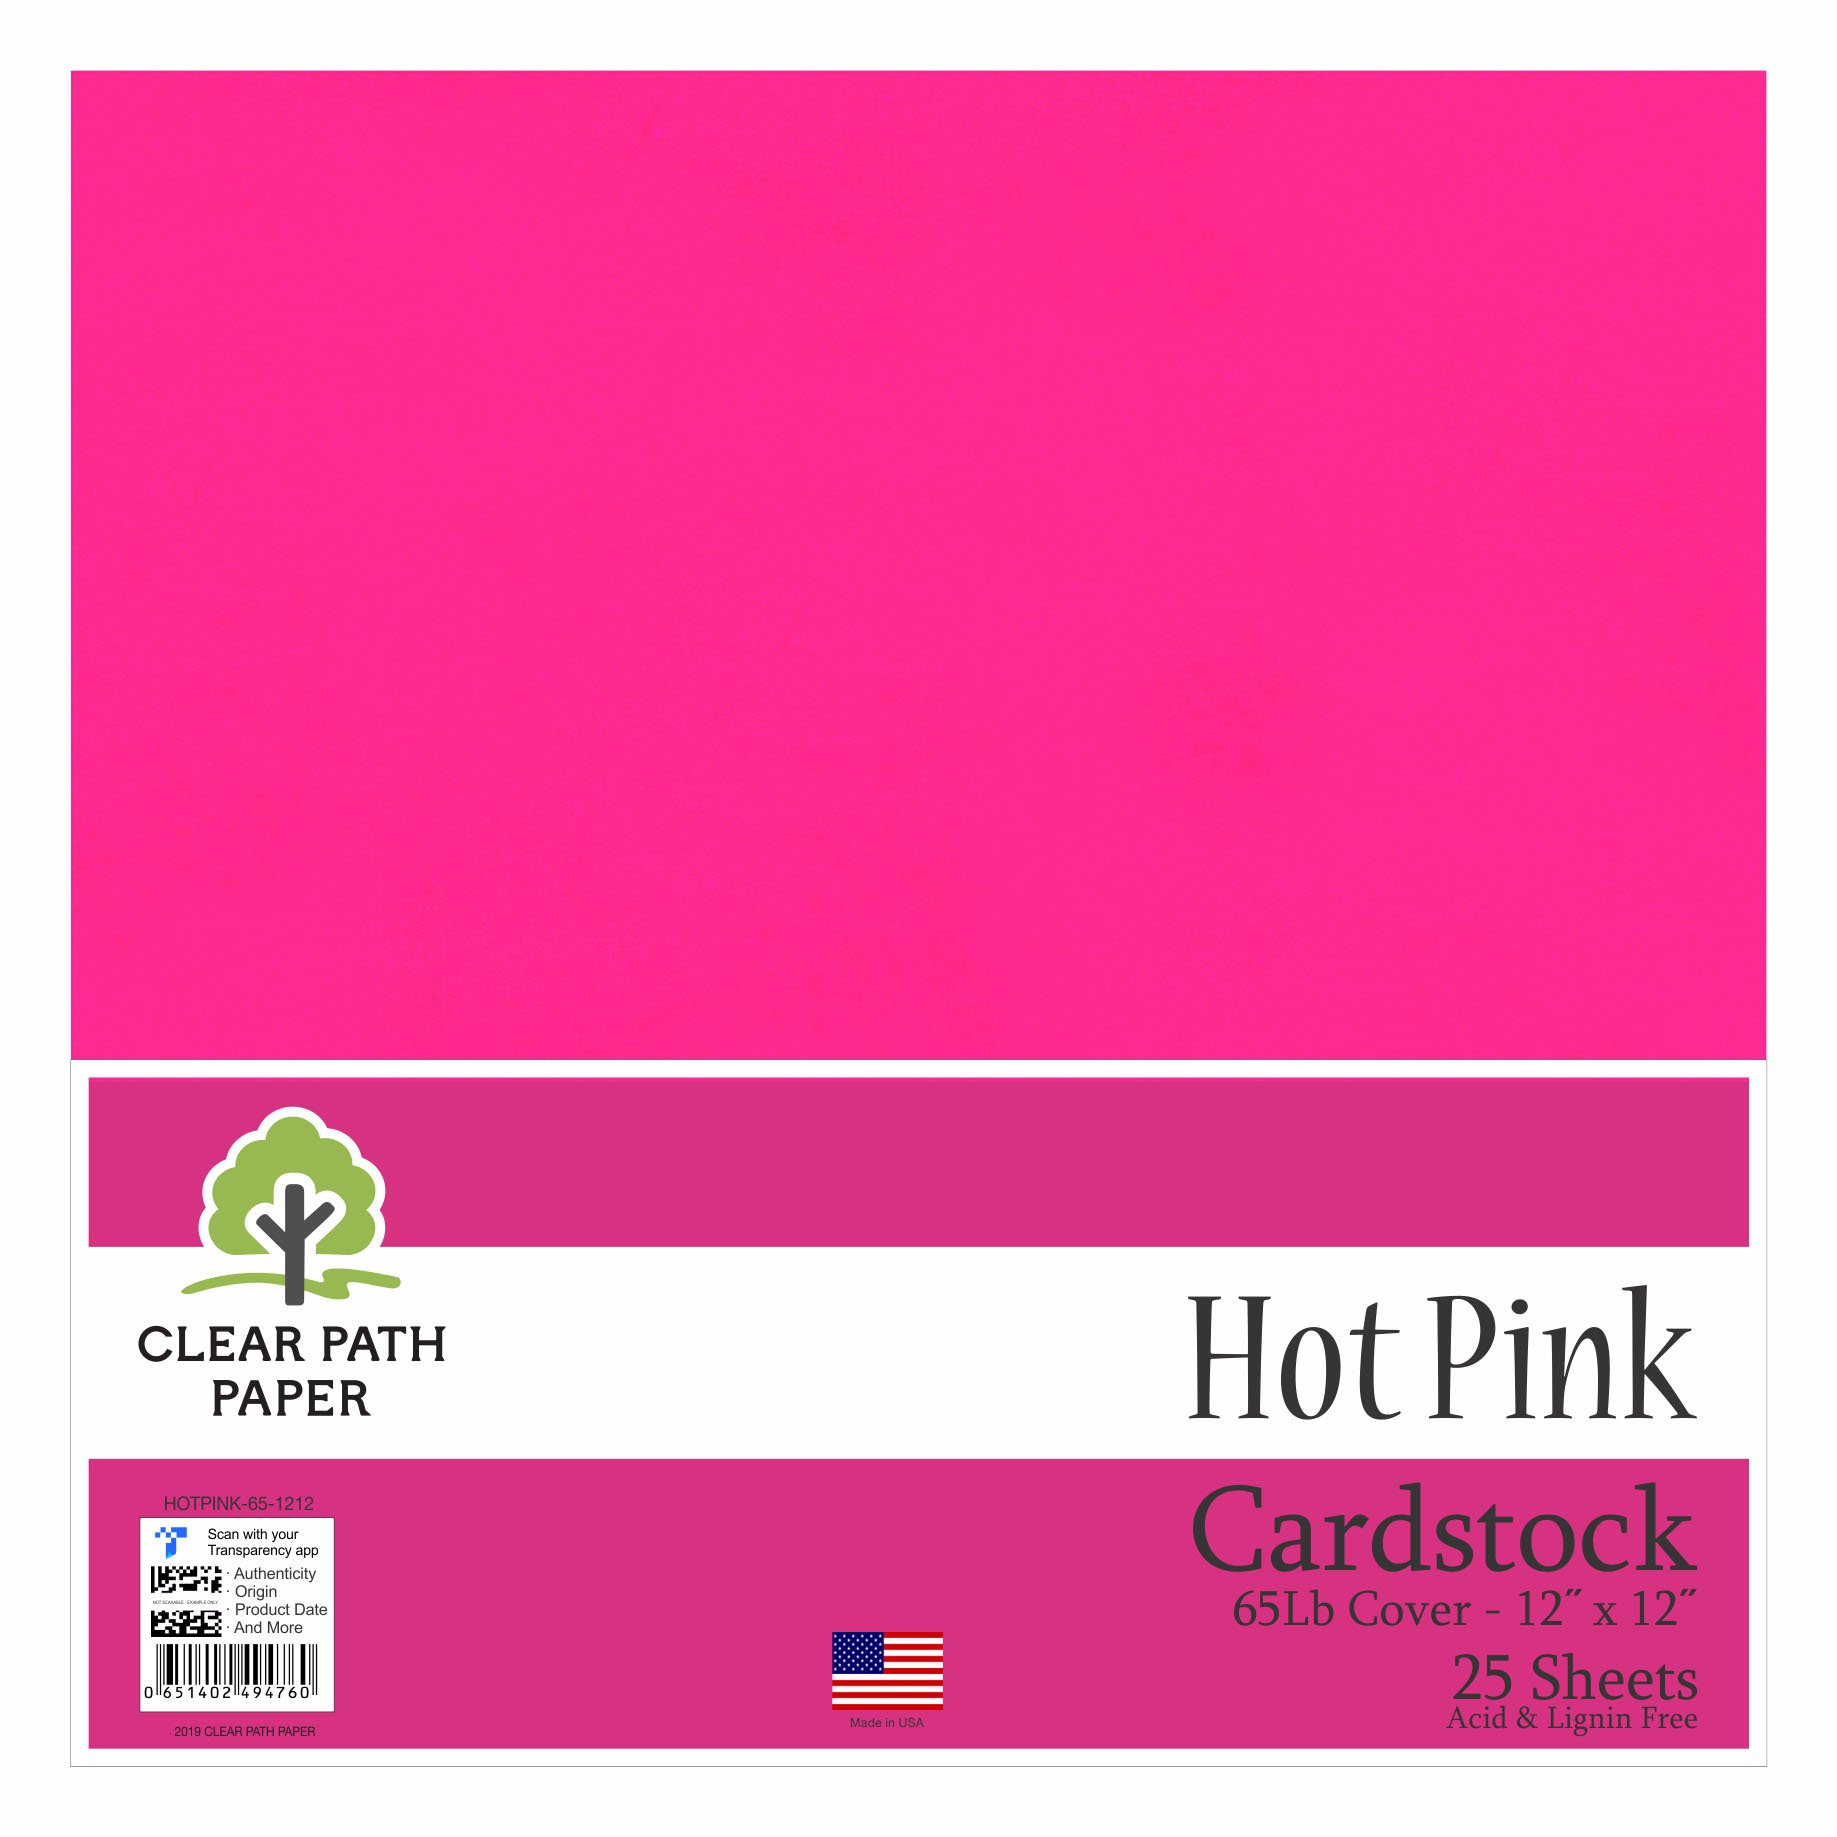 Image of a pack of Hot Pink Clear Path Paper cardstock.